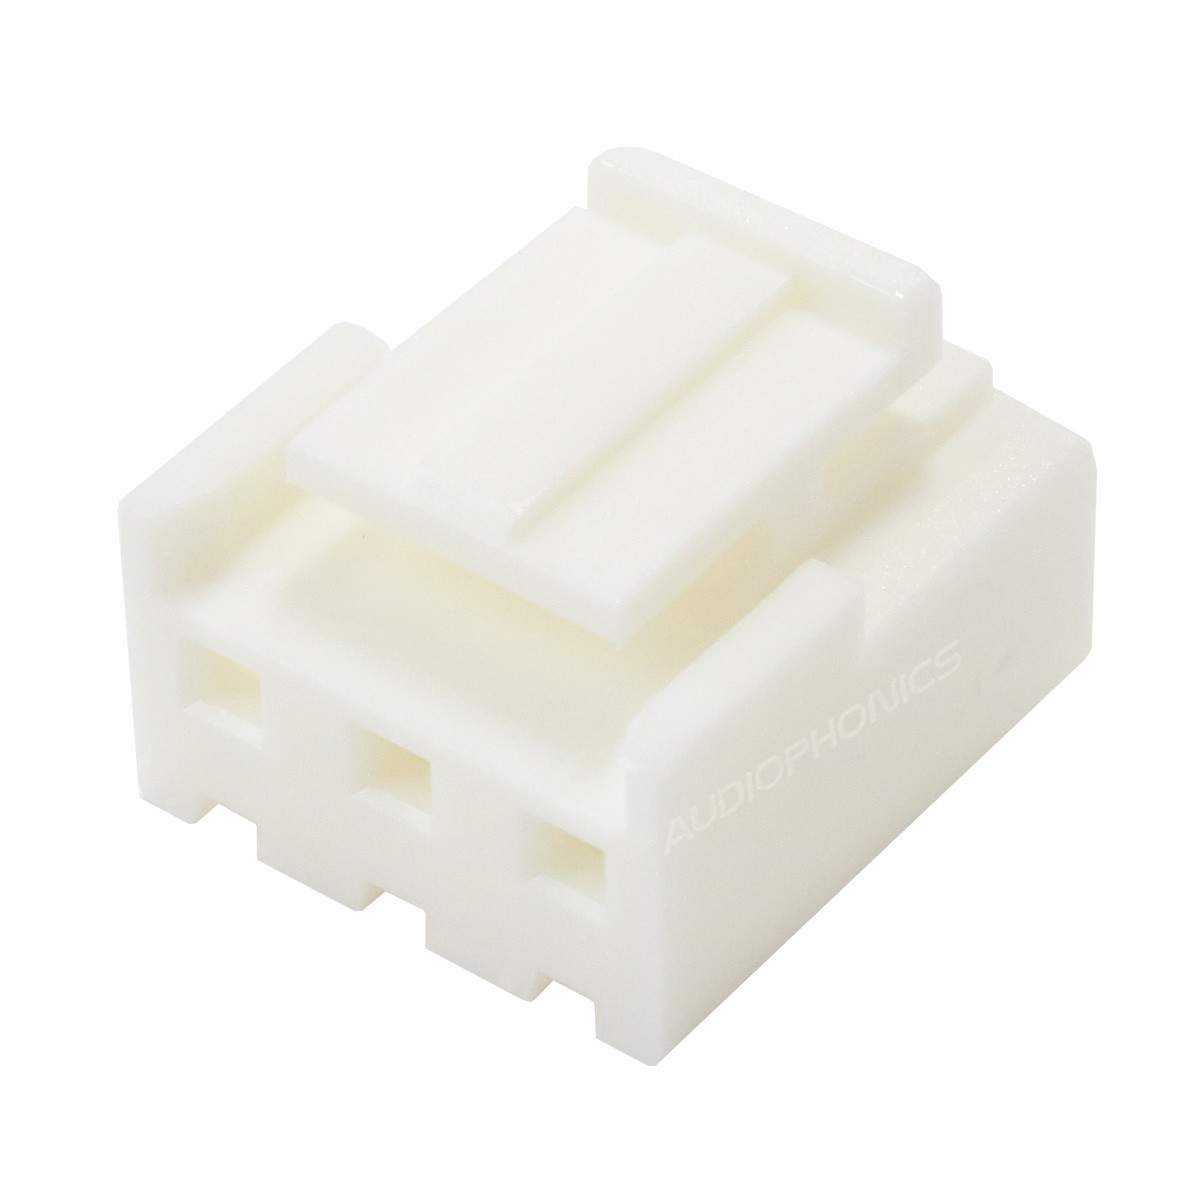 VH 3.96mm Female Casing 3 Channels White (Unit)